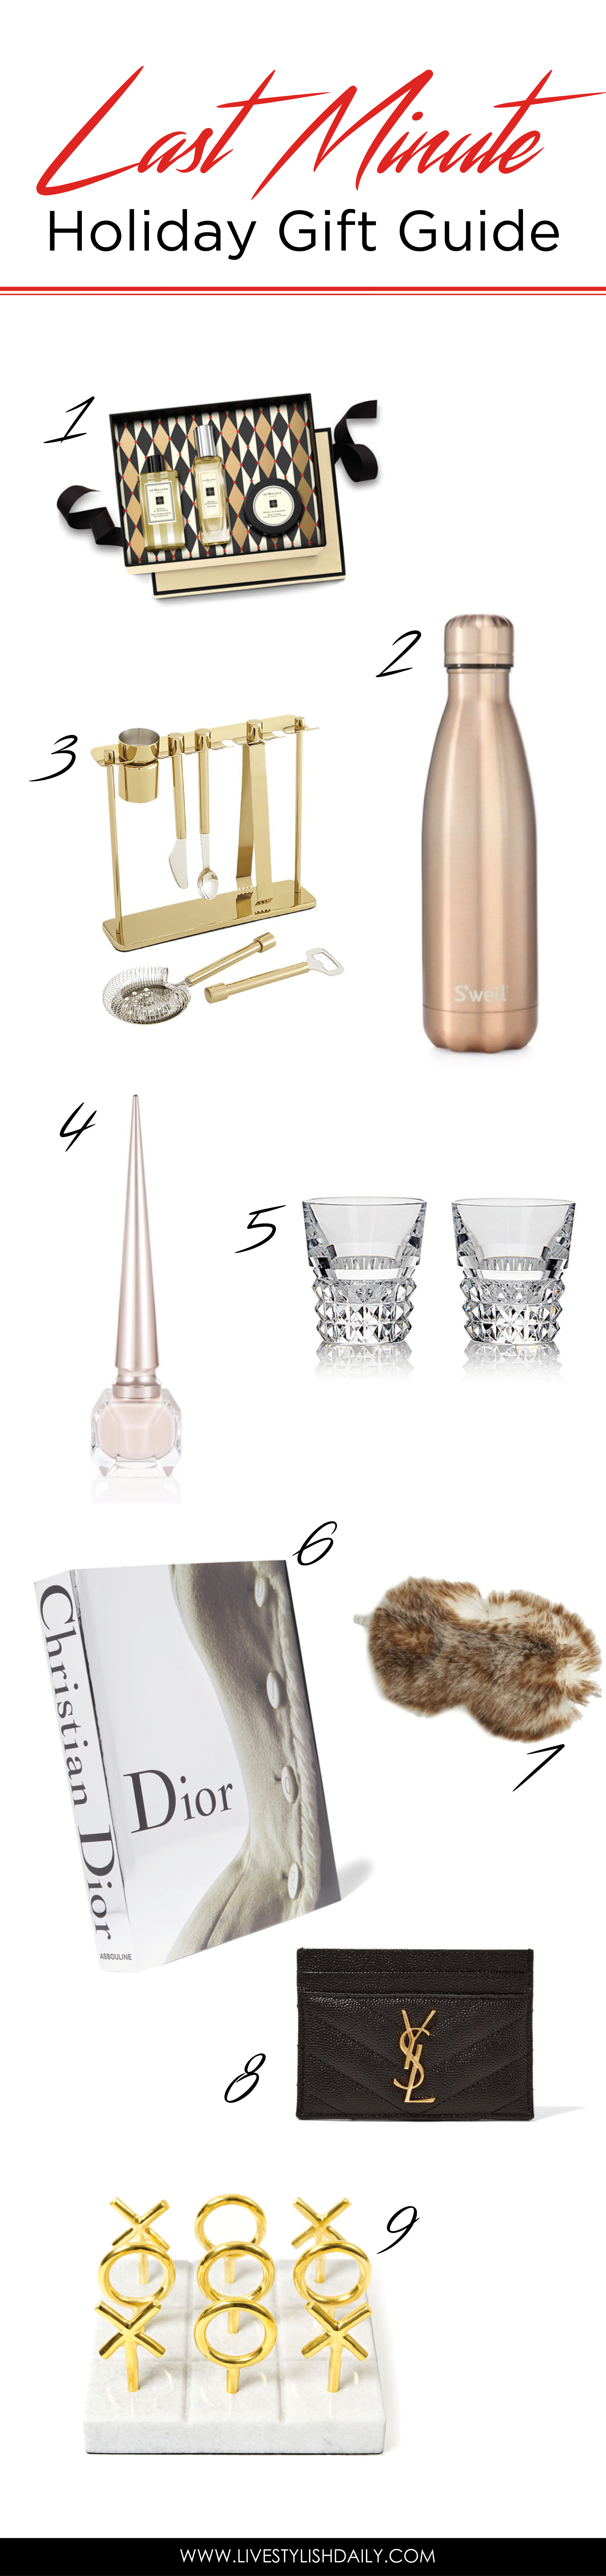 lm-gift-guide